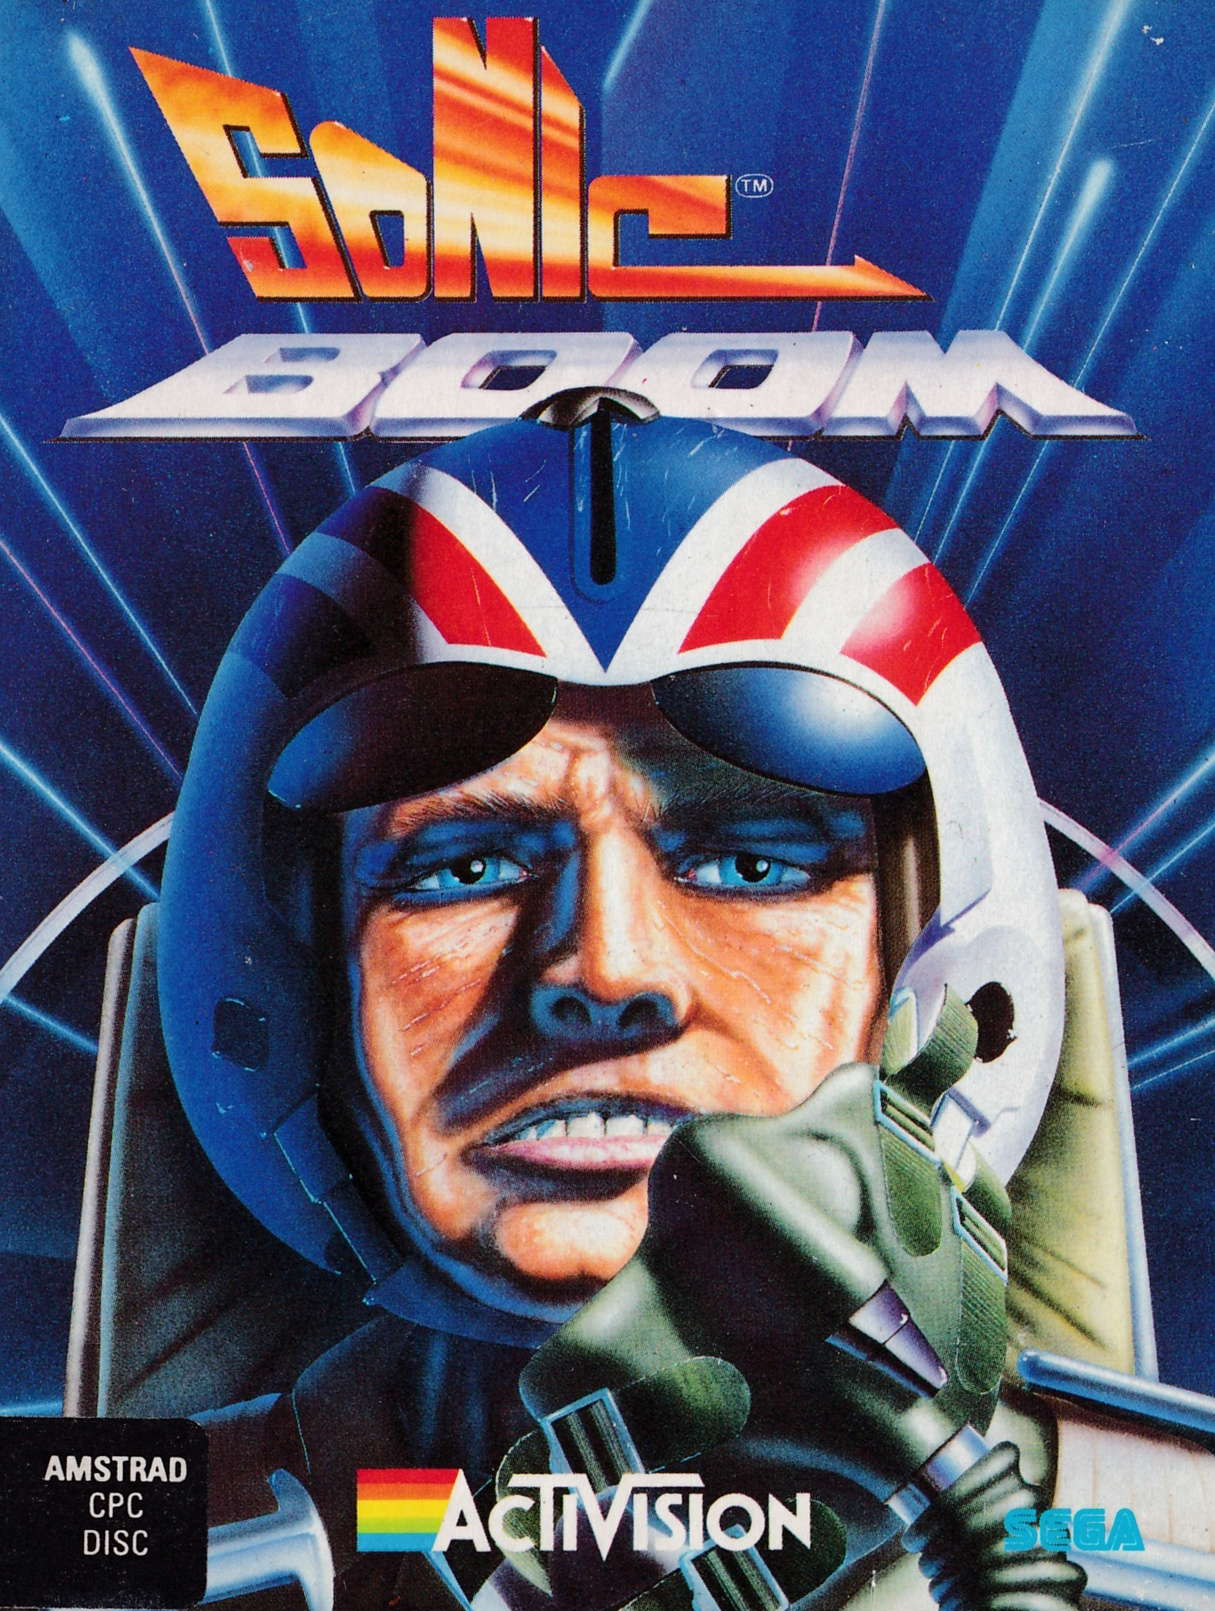 cover of the Amstrad CPC game Sonic Boom  by GameBase CPC